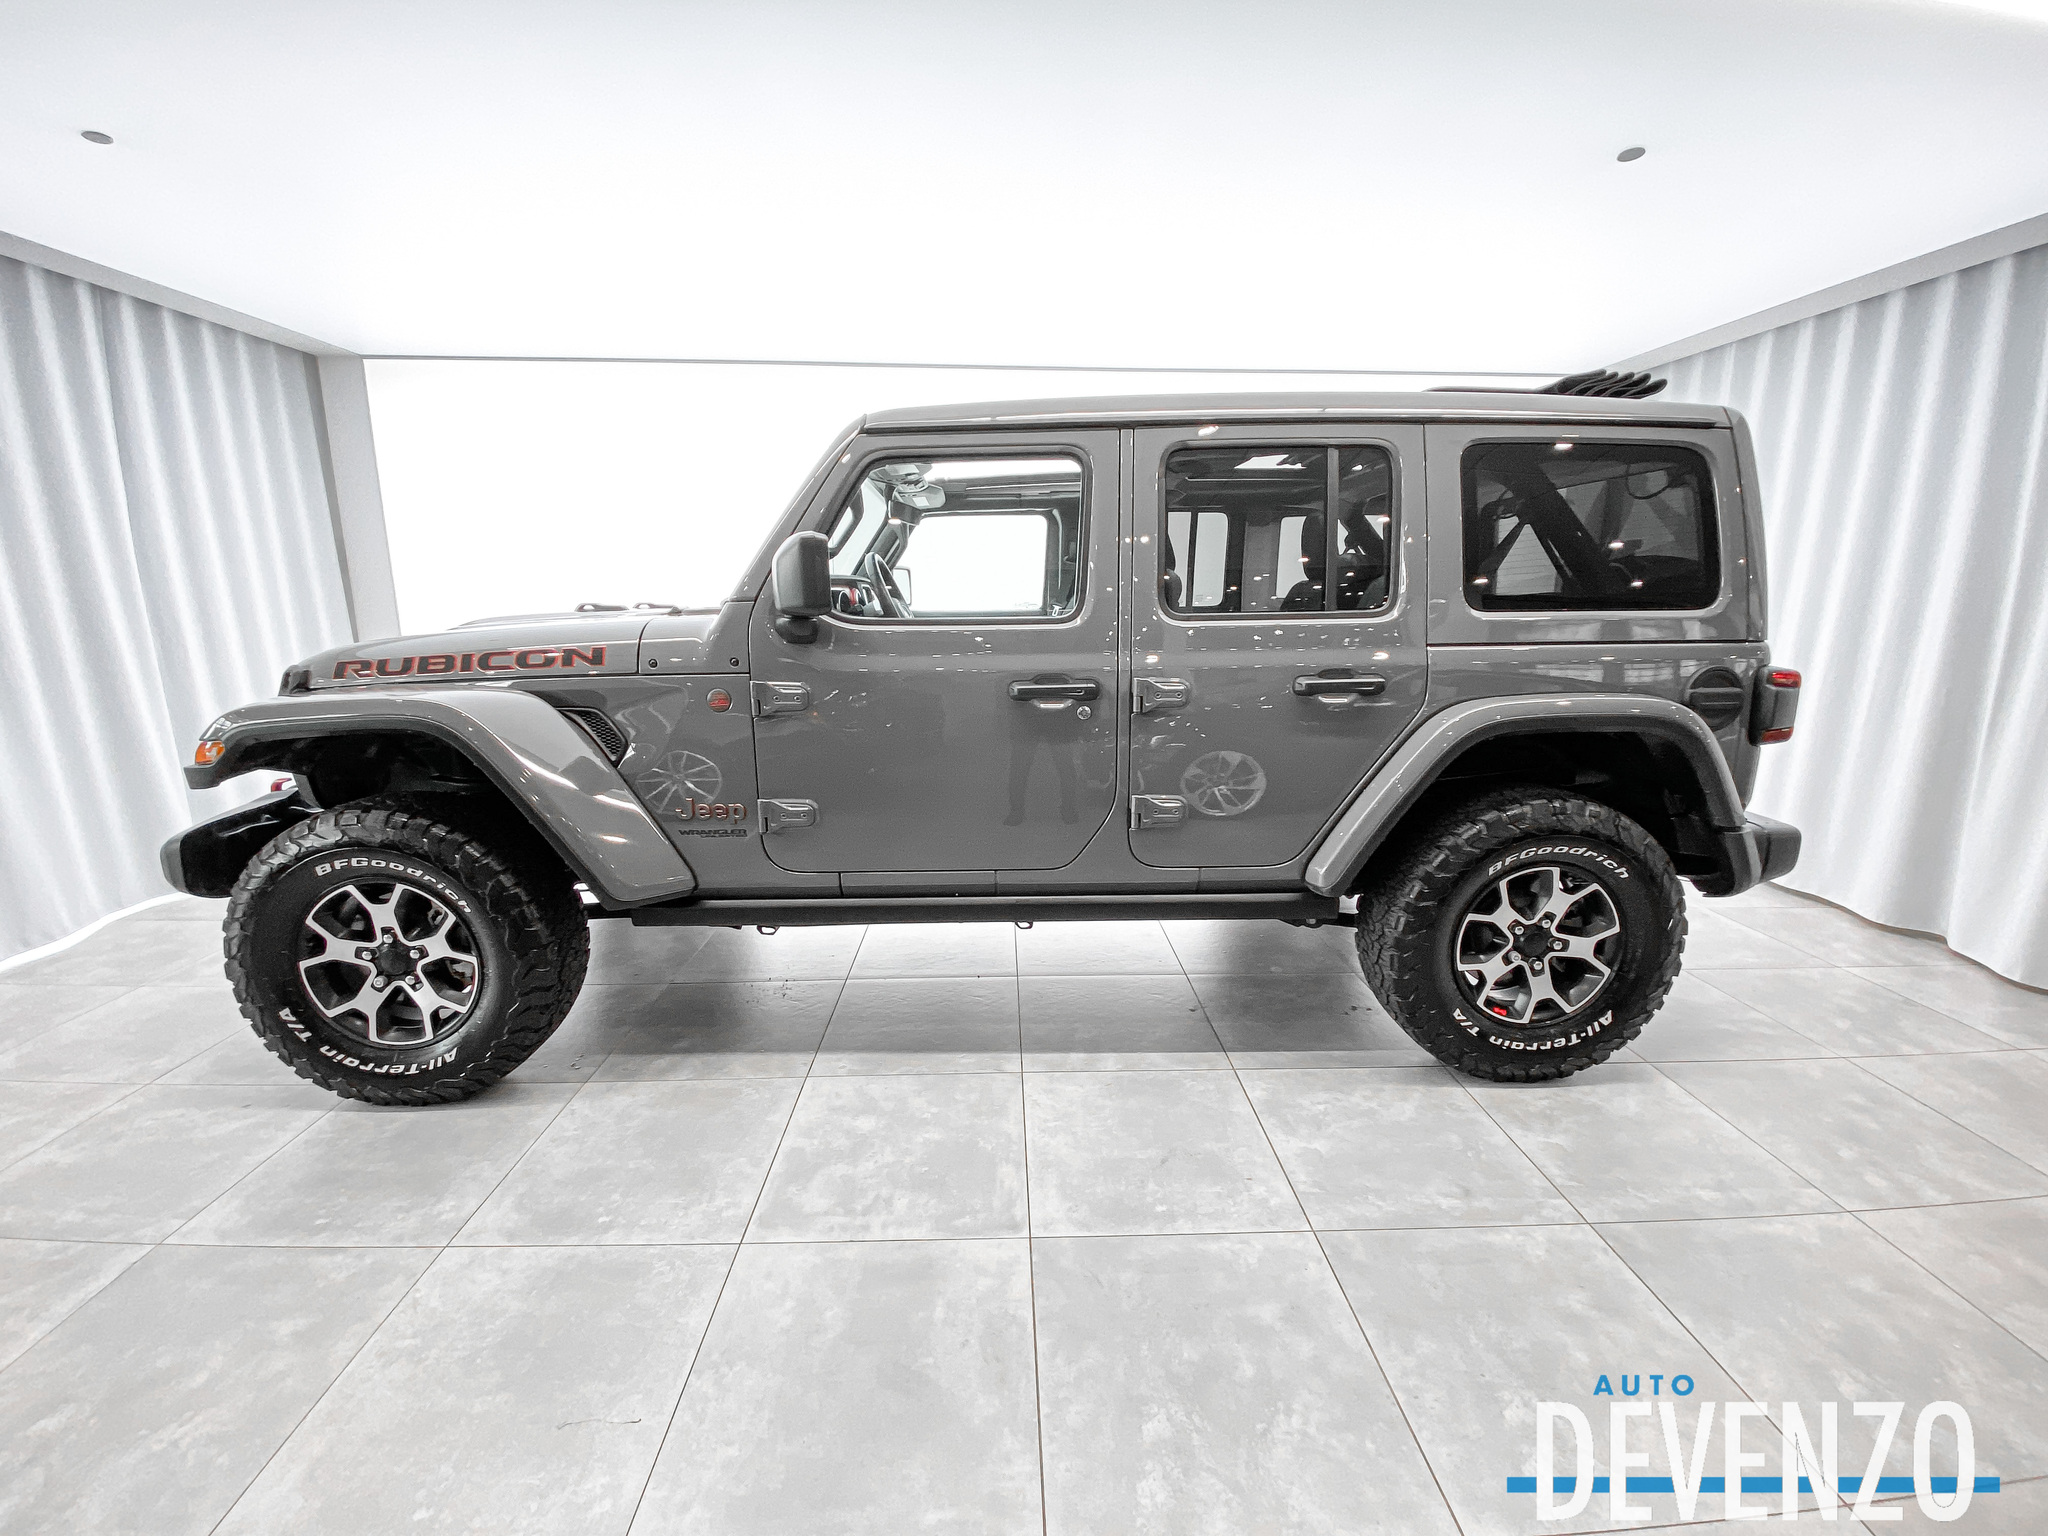 2020 Jeep WRANGLER UNLIMITED Rubicon 4×4 CUIR NAVI SKY ROOF complet